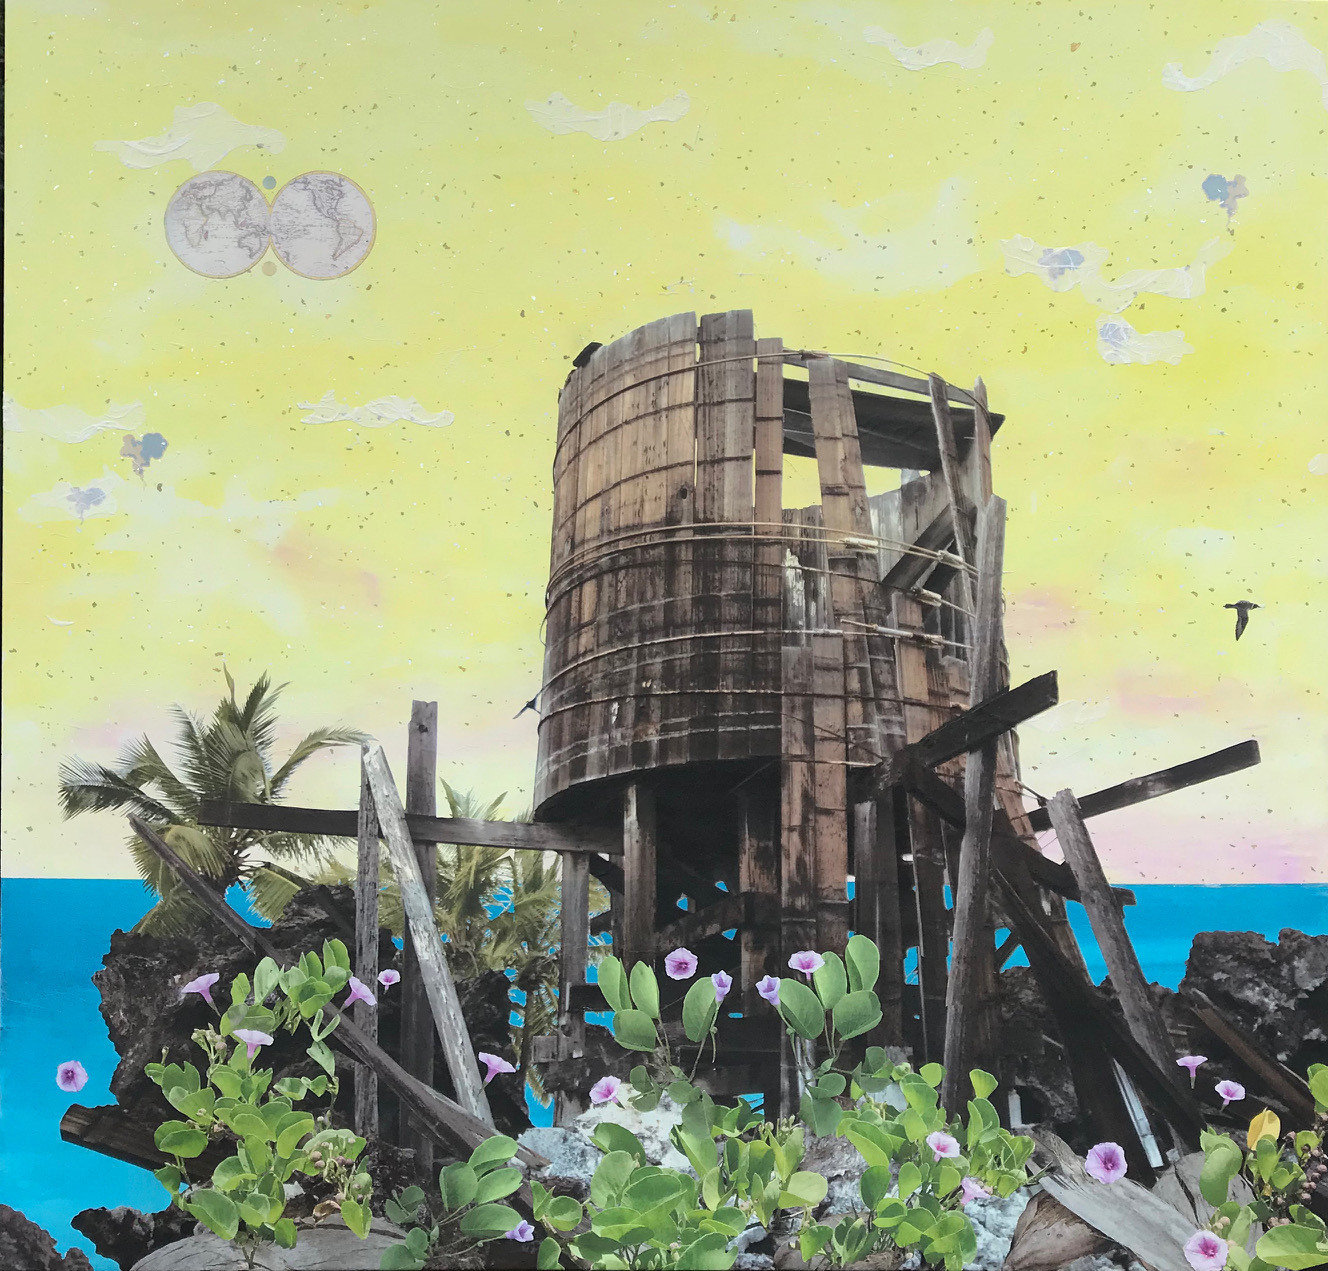 Painting of dilapidated water catchment tank. An atlas of the world in upper left corner.